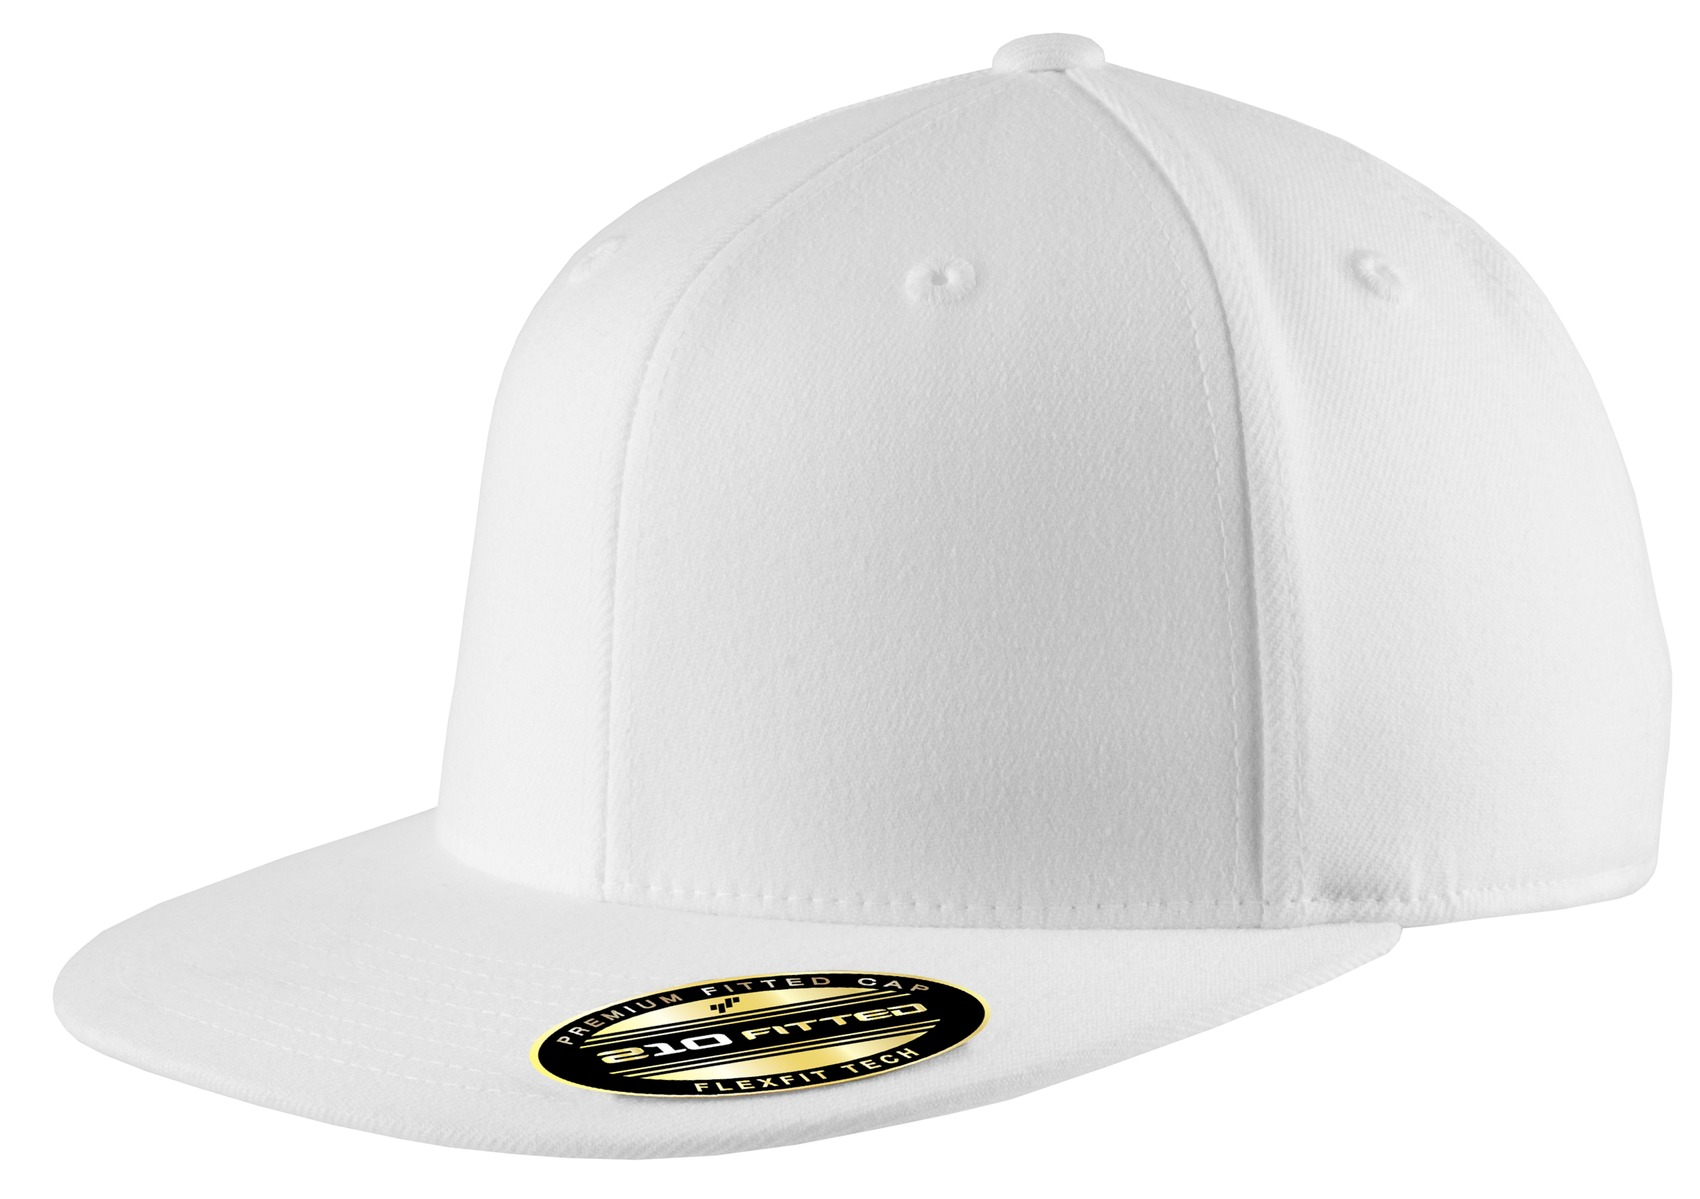 Port Authority Flexfit Flat Bill Cap. C808